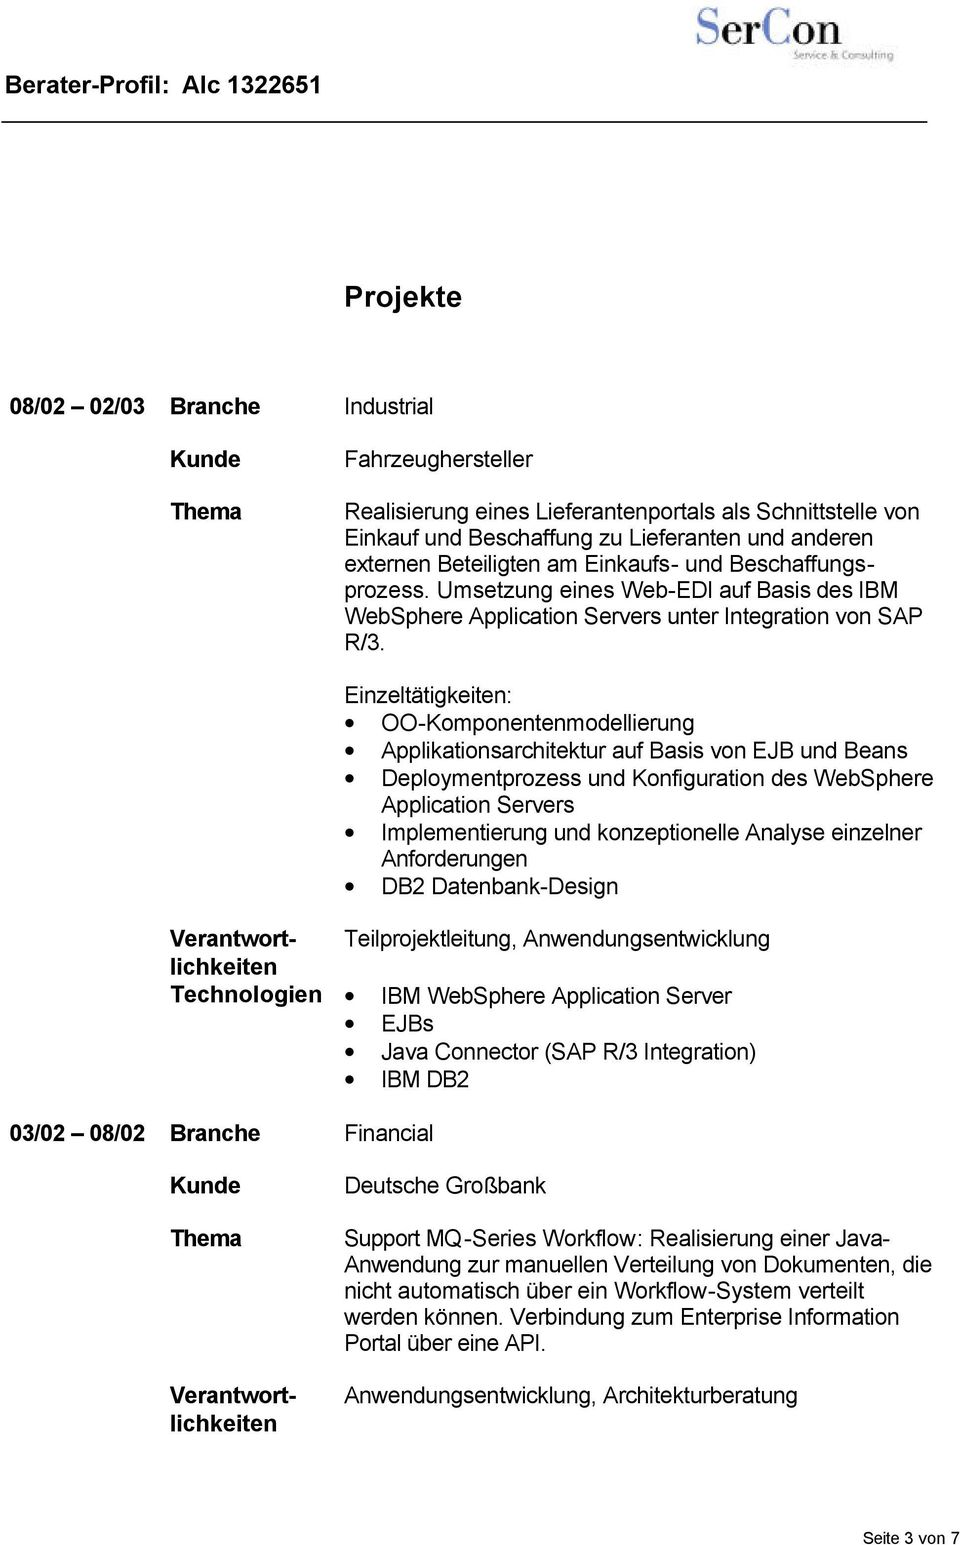 Einzeltätigkeiten: OO-Komponentenmodellierung Applikationsarchitektur auf Basis von EJB und Beans Deploymentprozess und Konfiguration des WebSphere Application Servers Implementierung und